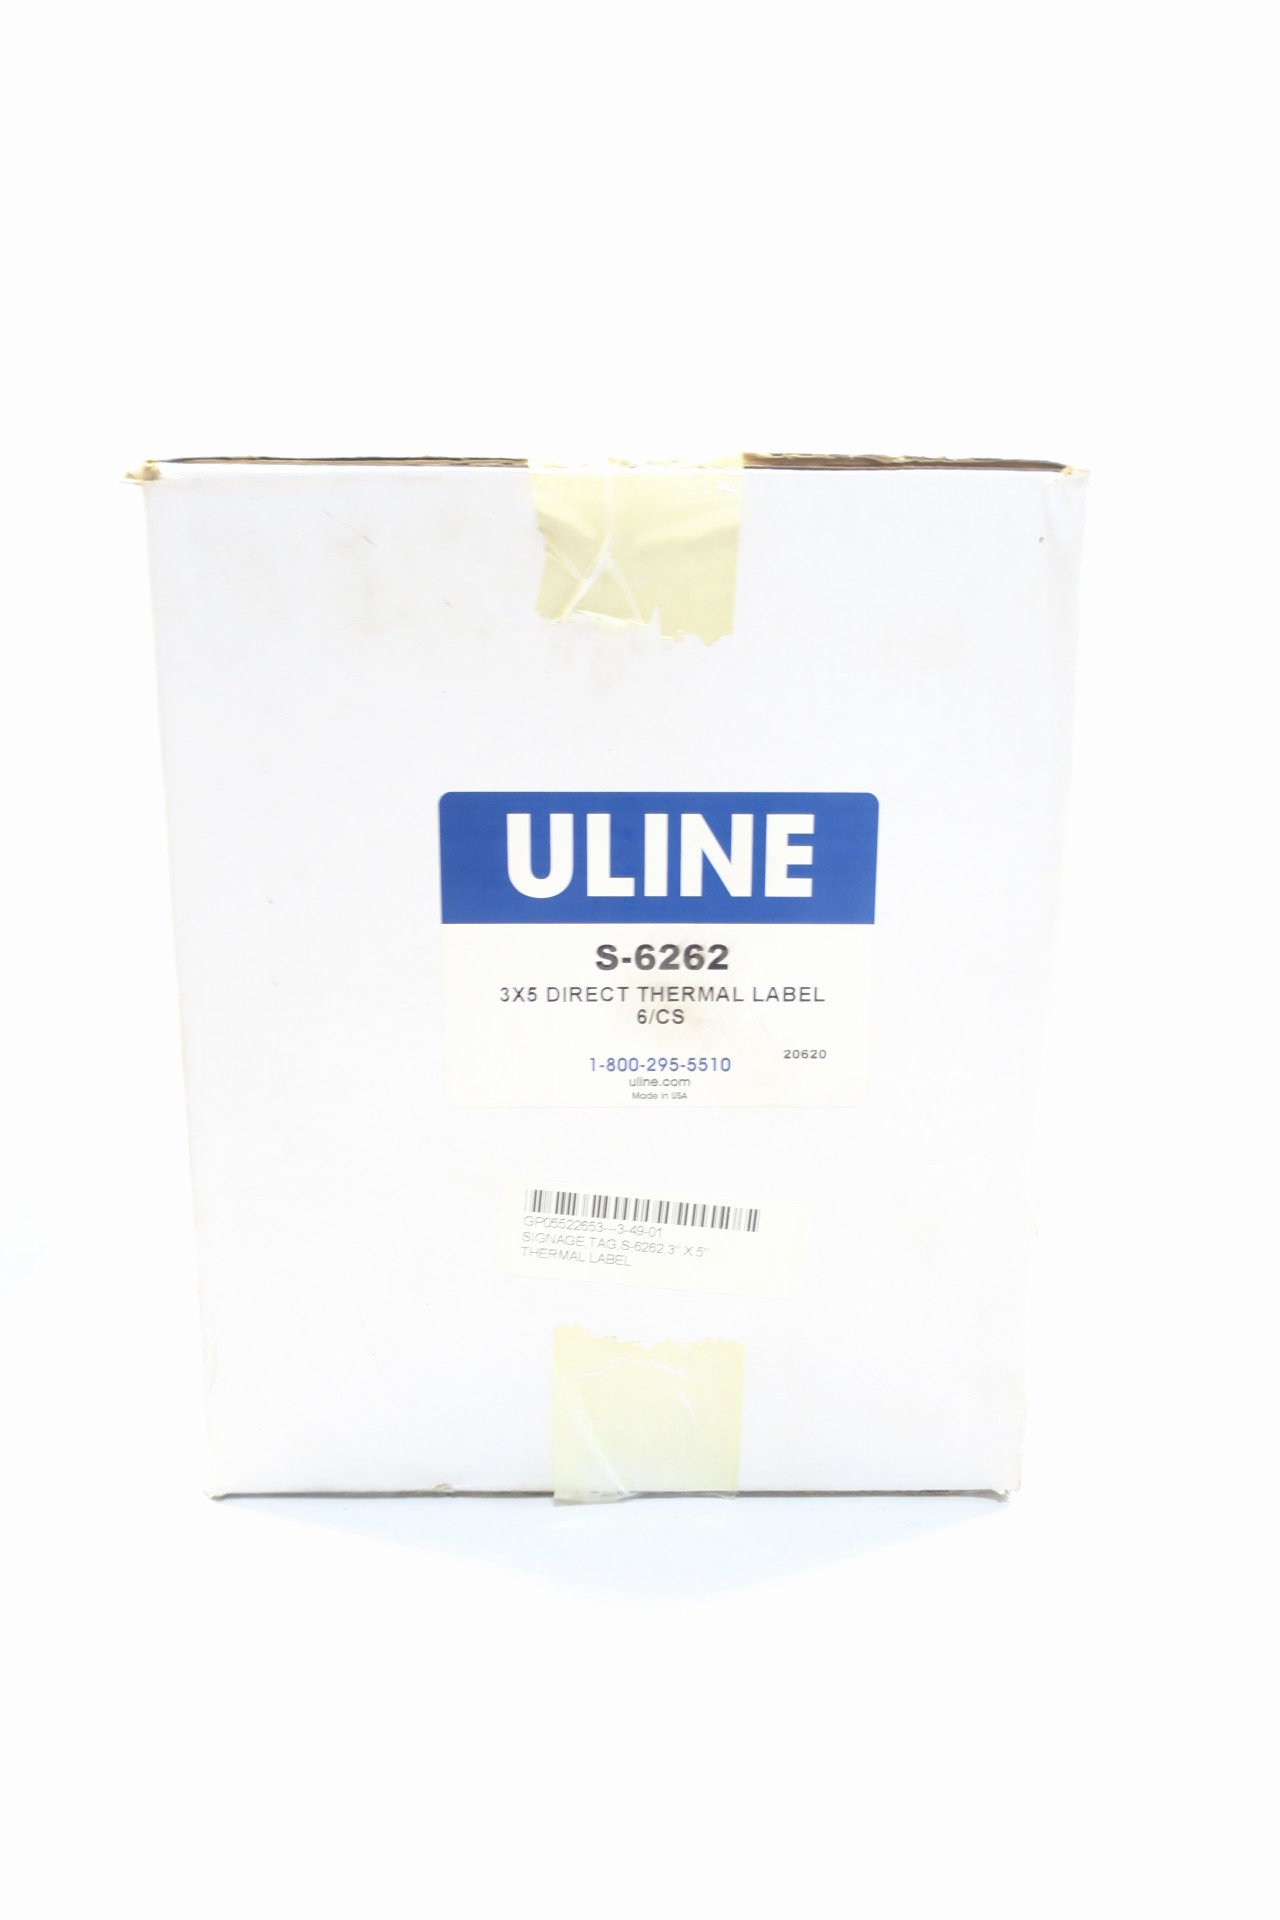 Uline thermal Labels Inspirational Box Of 6 Uline S 6262 3x5 Direct thermal Label D